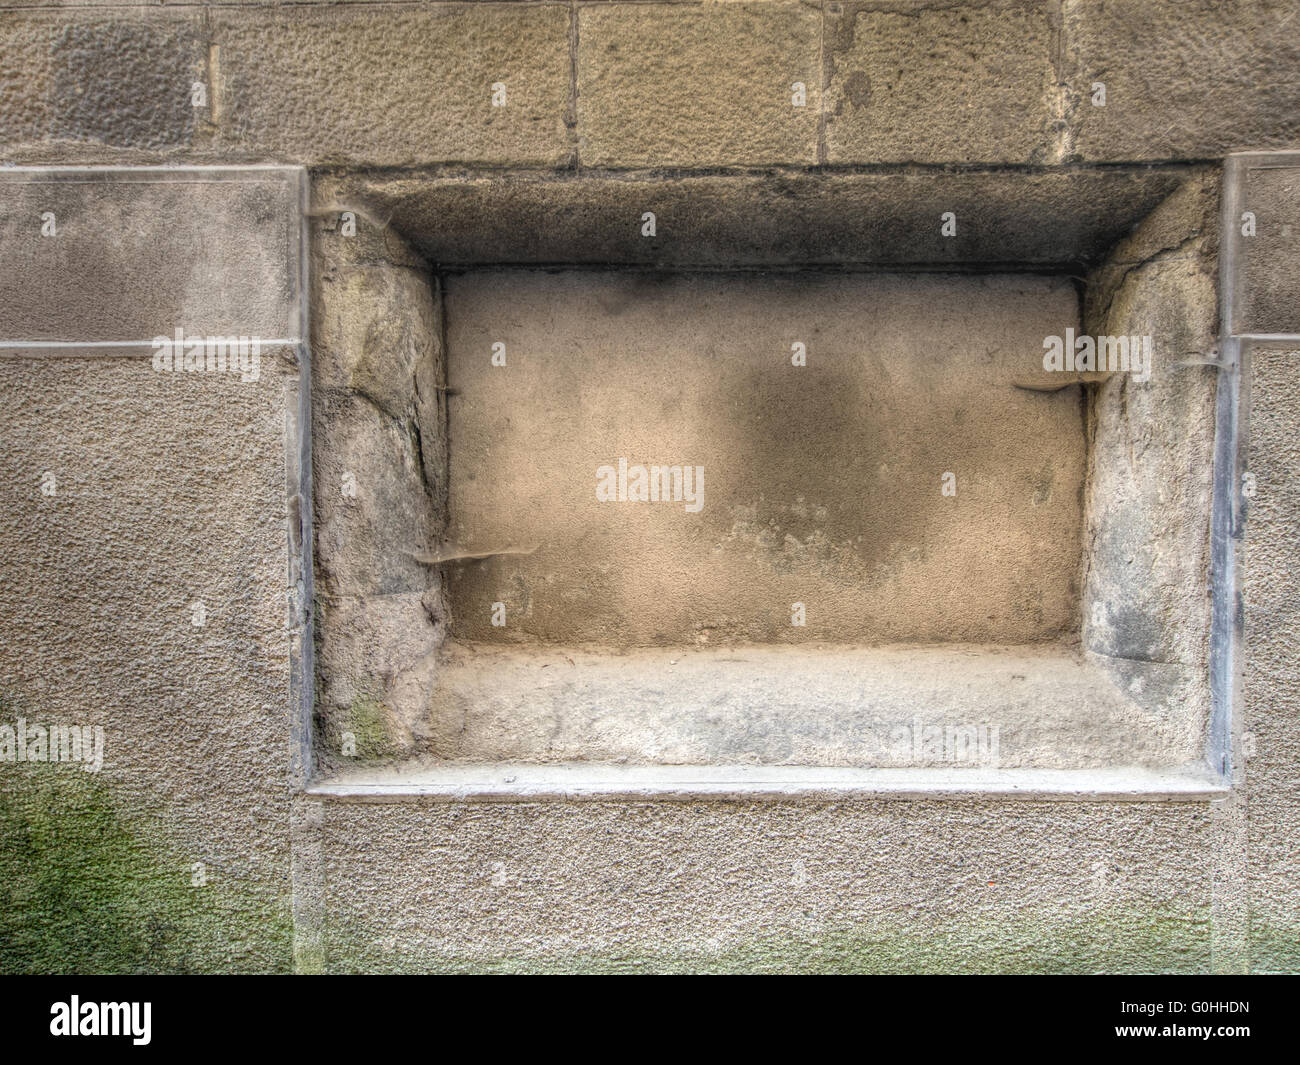 Ancient wall plaque with no wording. I wonder what was intended to go here.... - Stock Image